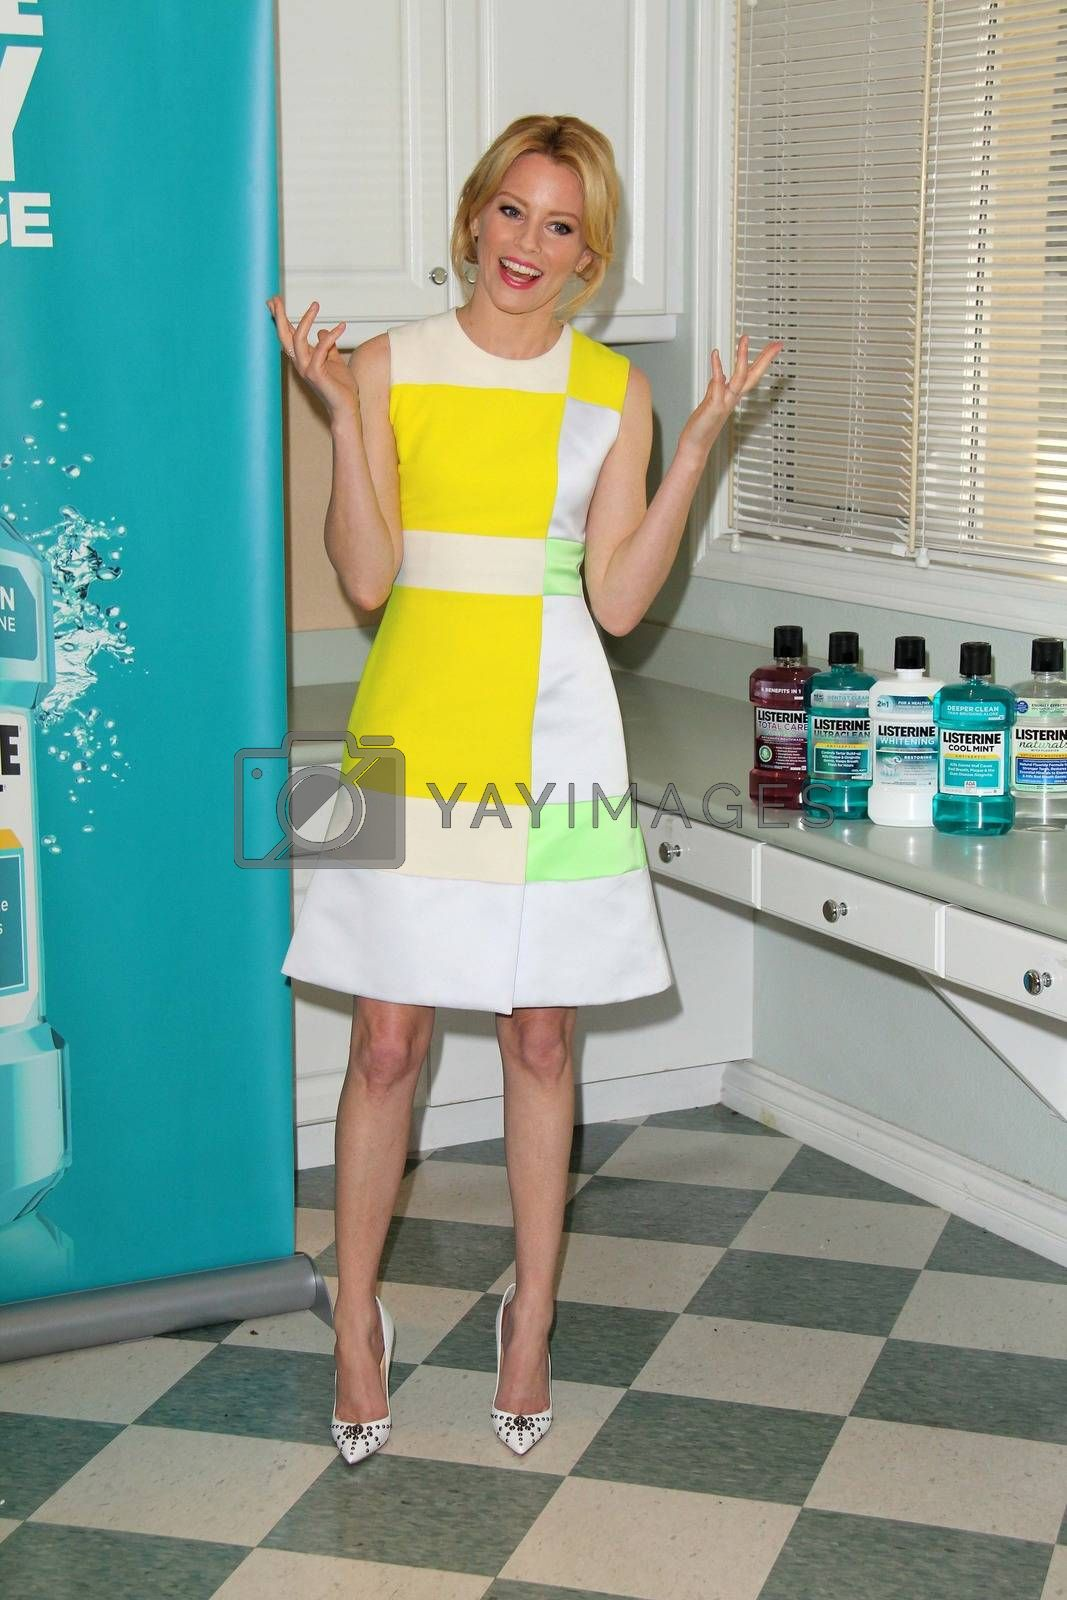 Elizabeth Banks Kicks Off The Listerine 21 Day Challenge, Children's Dental Center of Greater Los Angeles, Inglewood, CA 02-13 14/ImageCollect by ImageCollect